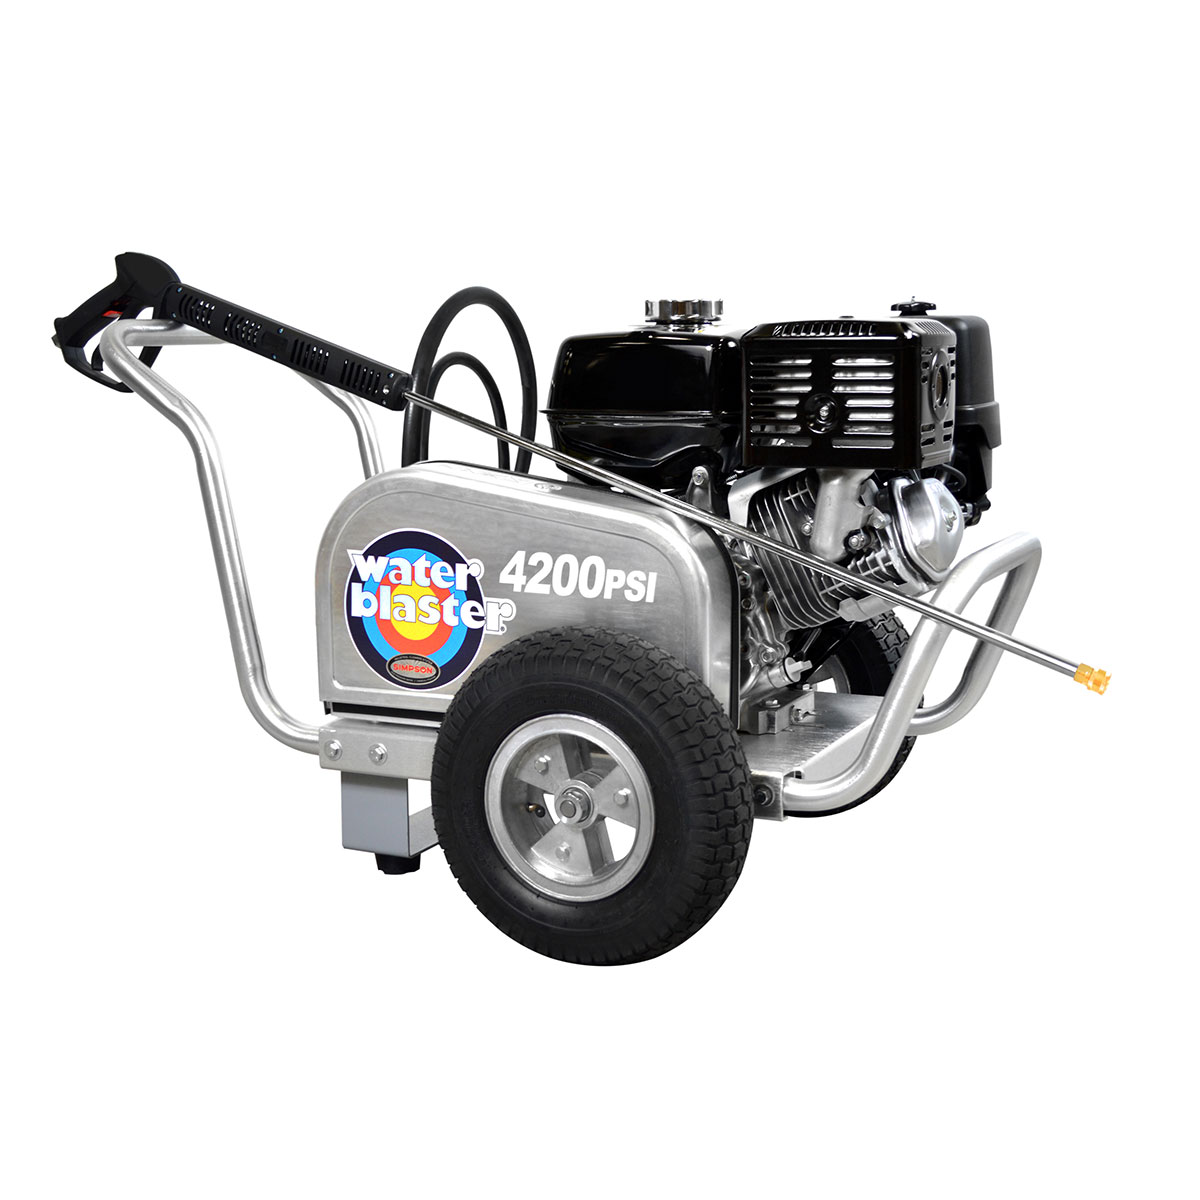 4200 PSI Aluminum Series - Commercial Direct Drive Pressure Washer with a Honda GX 390 engine and a 50' hose - ALWB60828